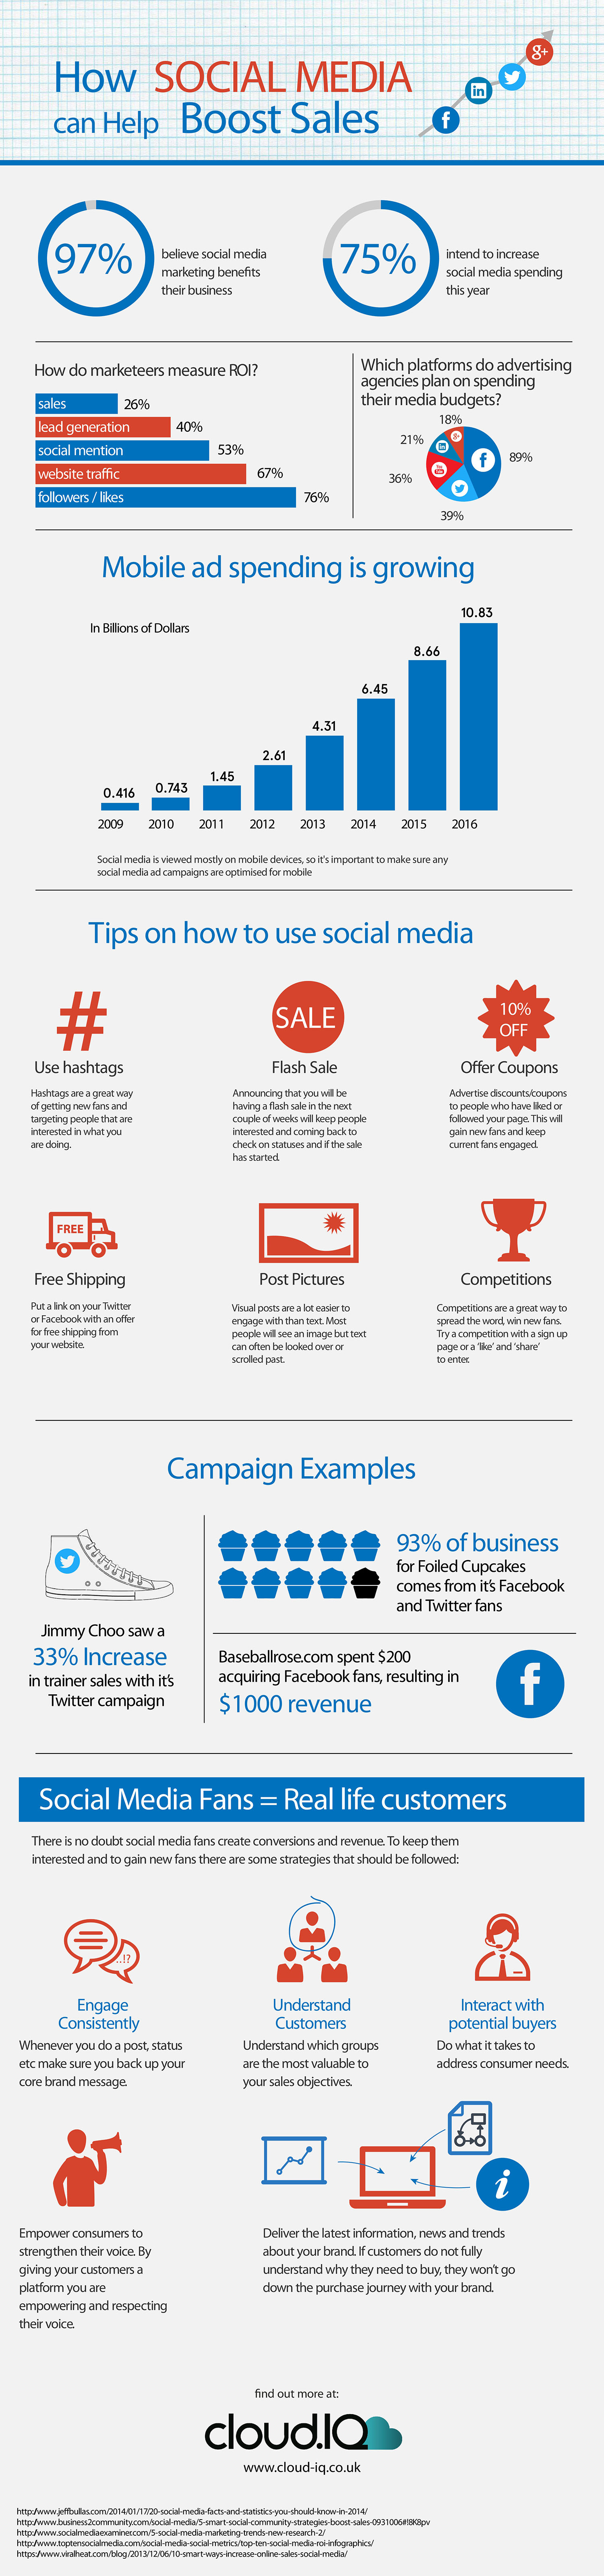 How Social Media Can Boost Sales #infographic